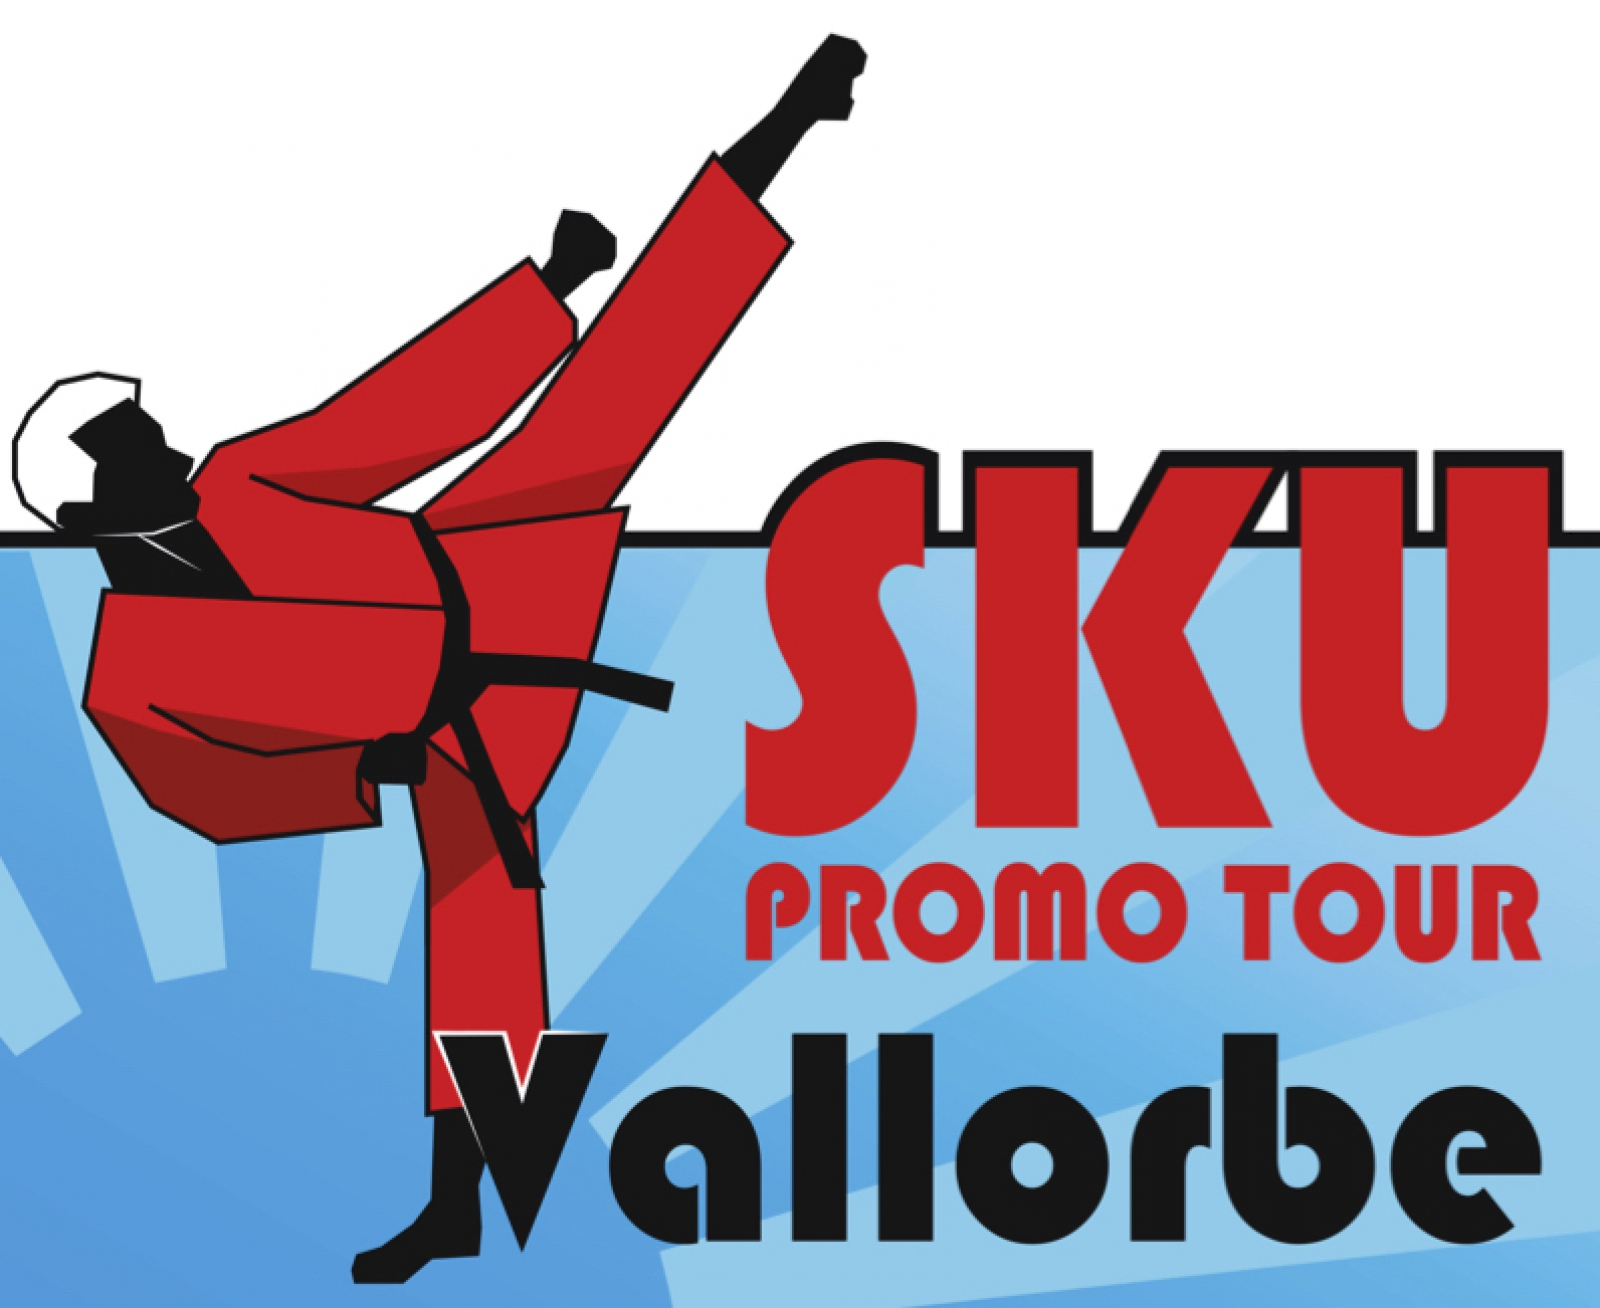 Set Online Karate: Sku Promo Tour Vallorbe 2020